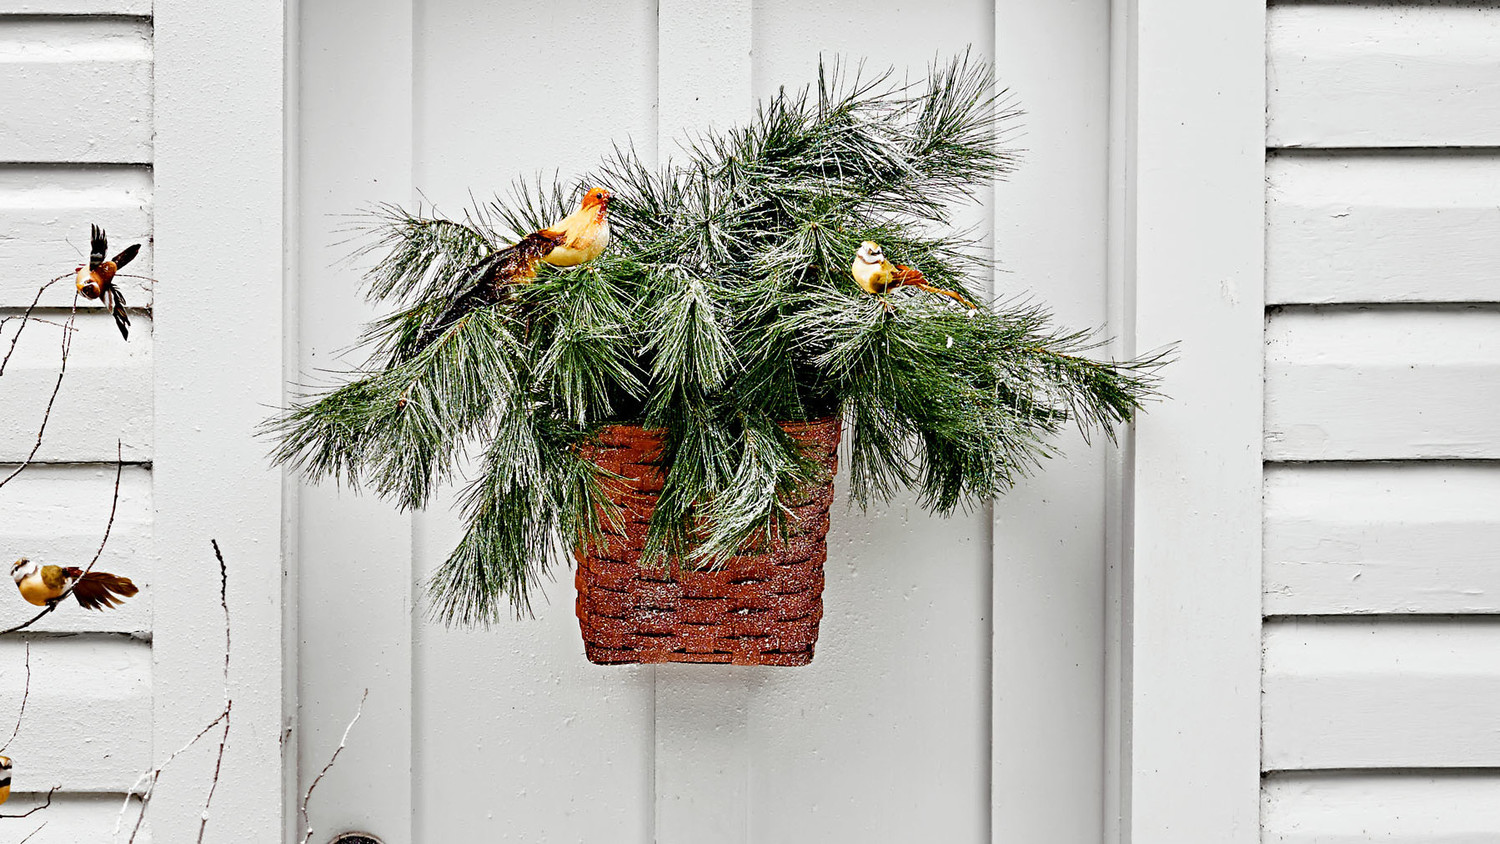 Hanging Basket with Winter Birds